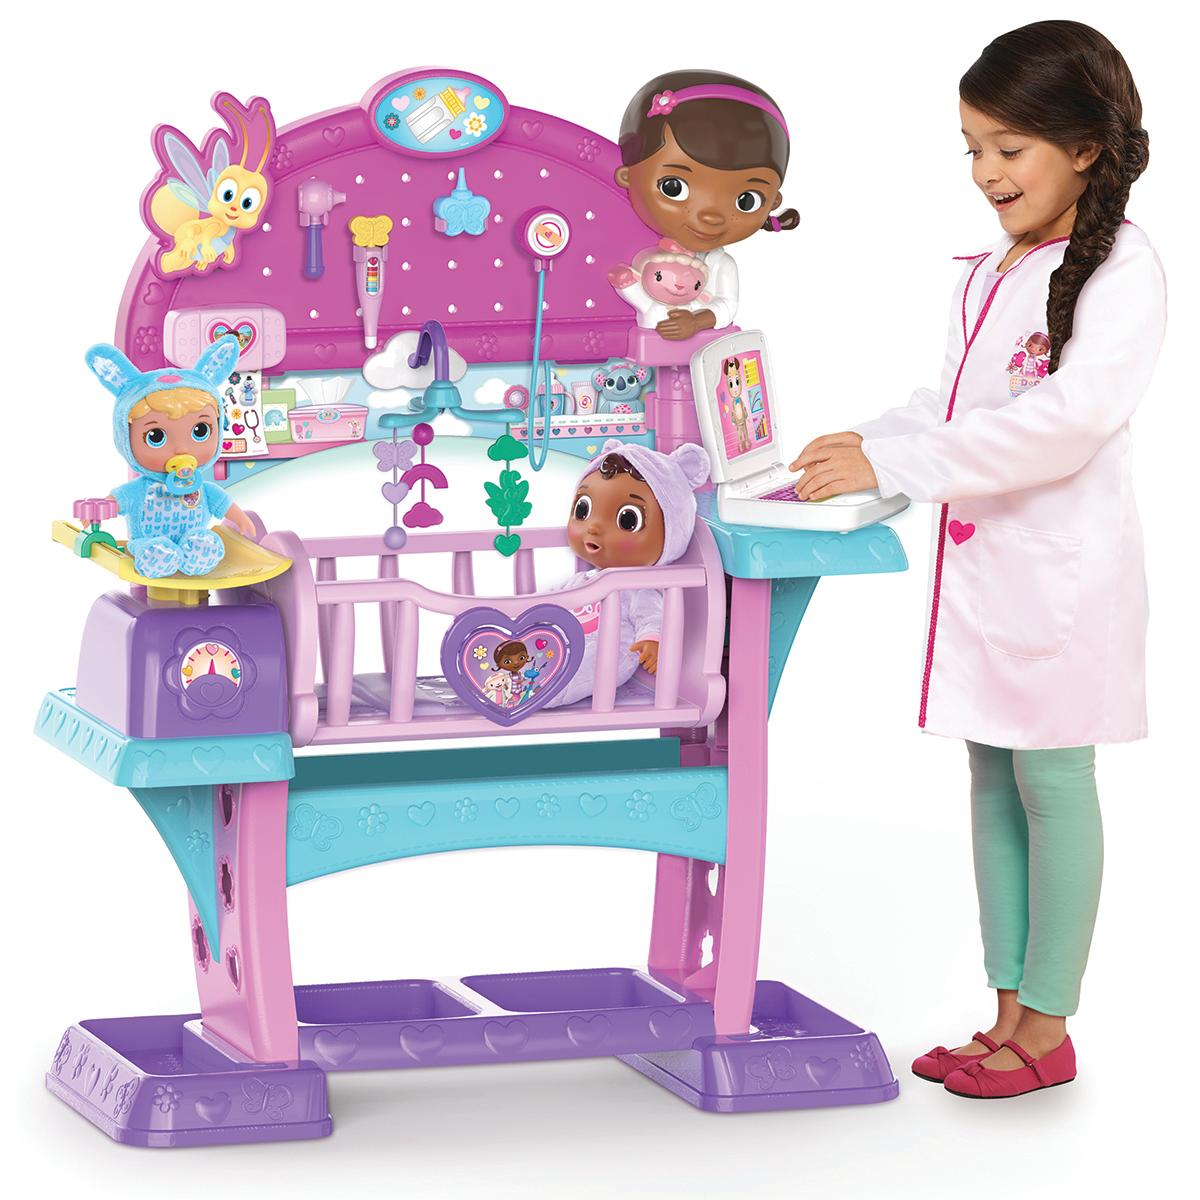 Disney Junior Doc McStuffins Baby All-In-One Nursery/Photo courtesy of the Toy Insider